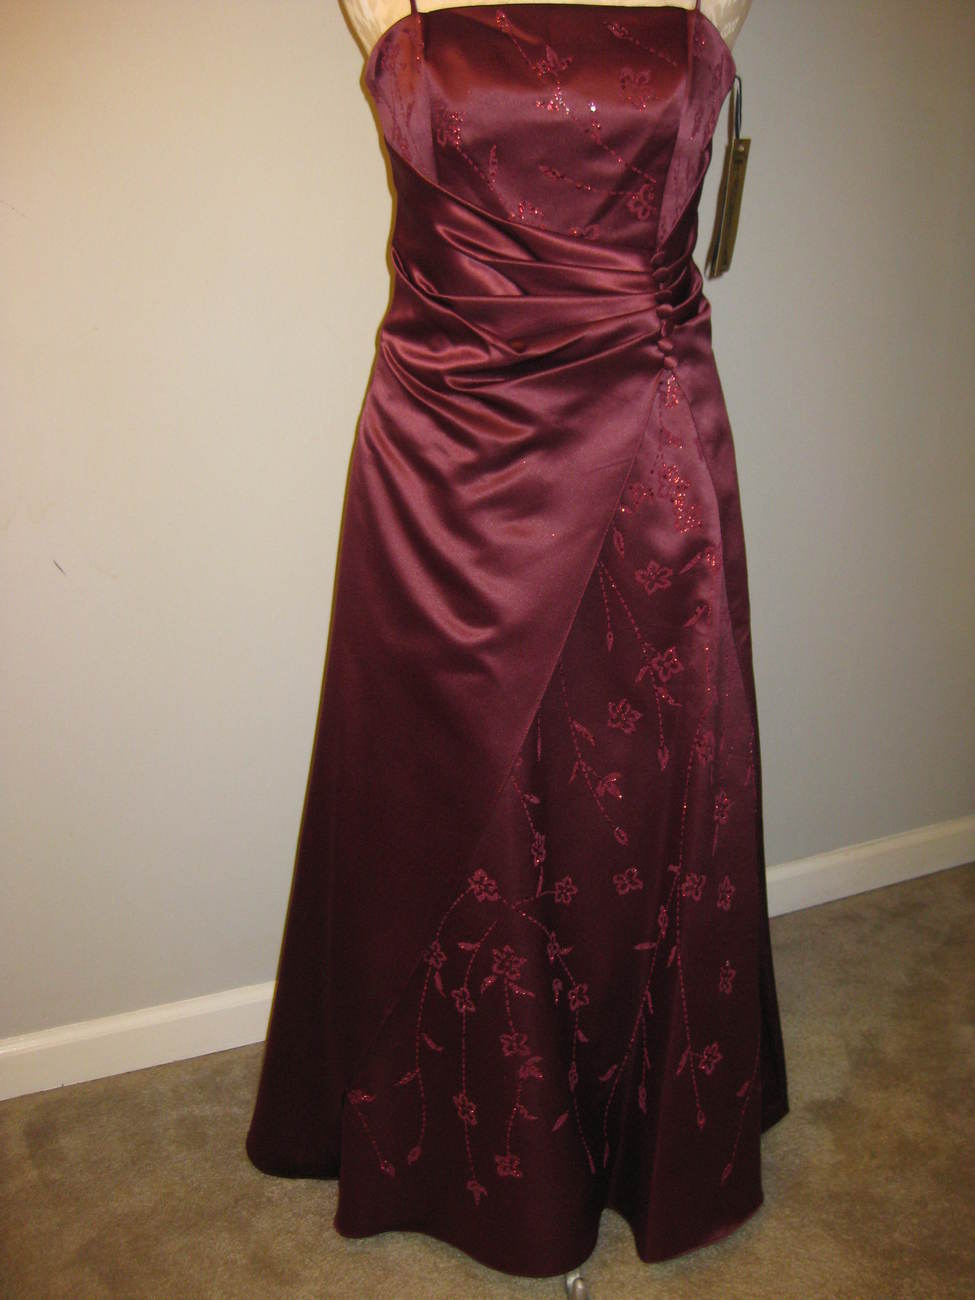 Formal Burgundy Satin Caviar Design Gown Size M NWT